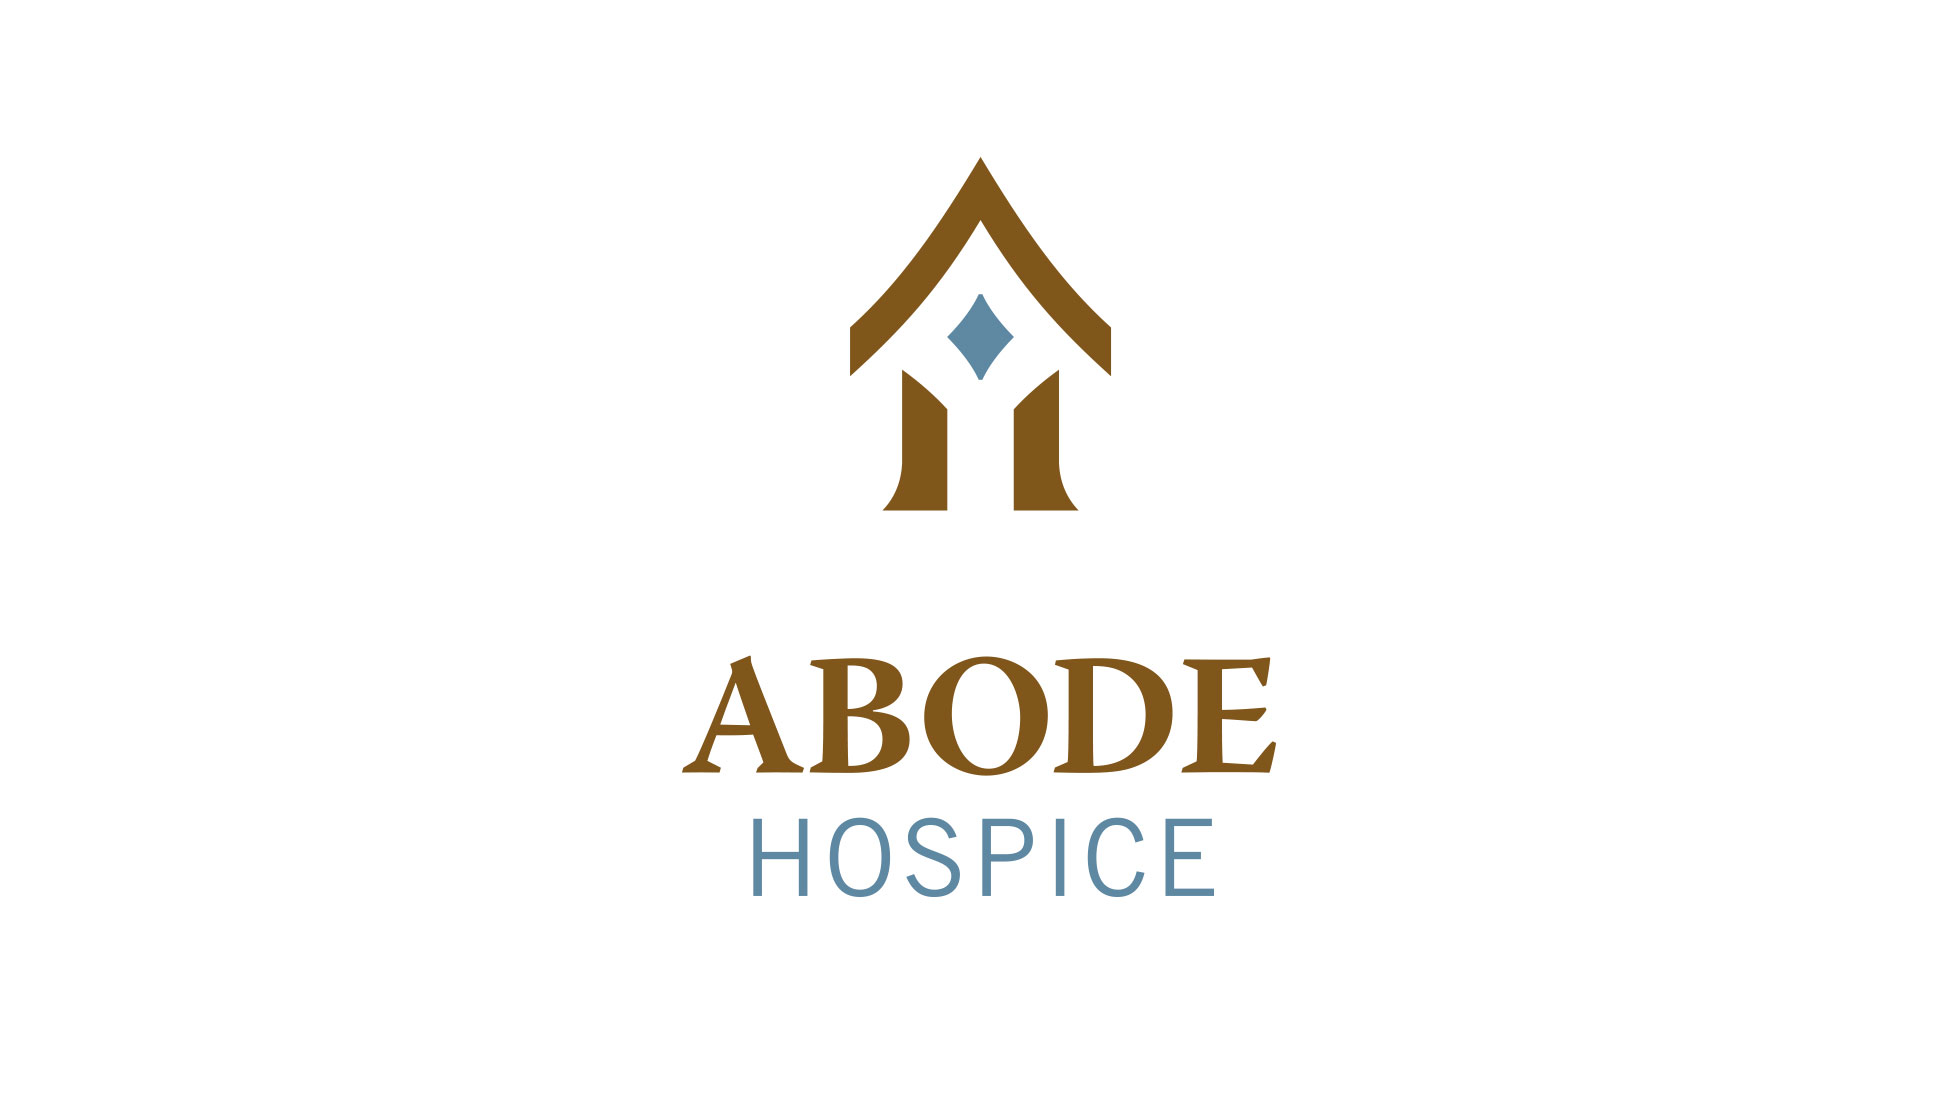 03 Abode Hospice